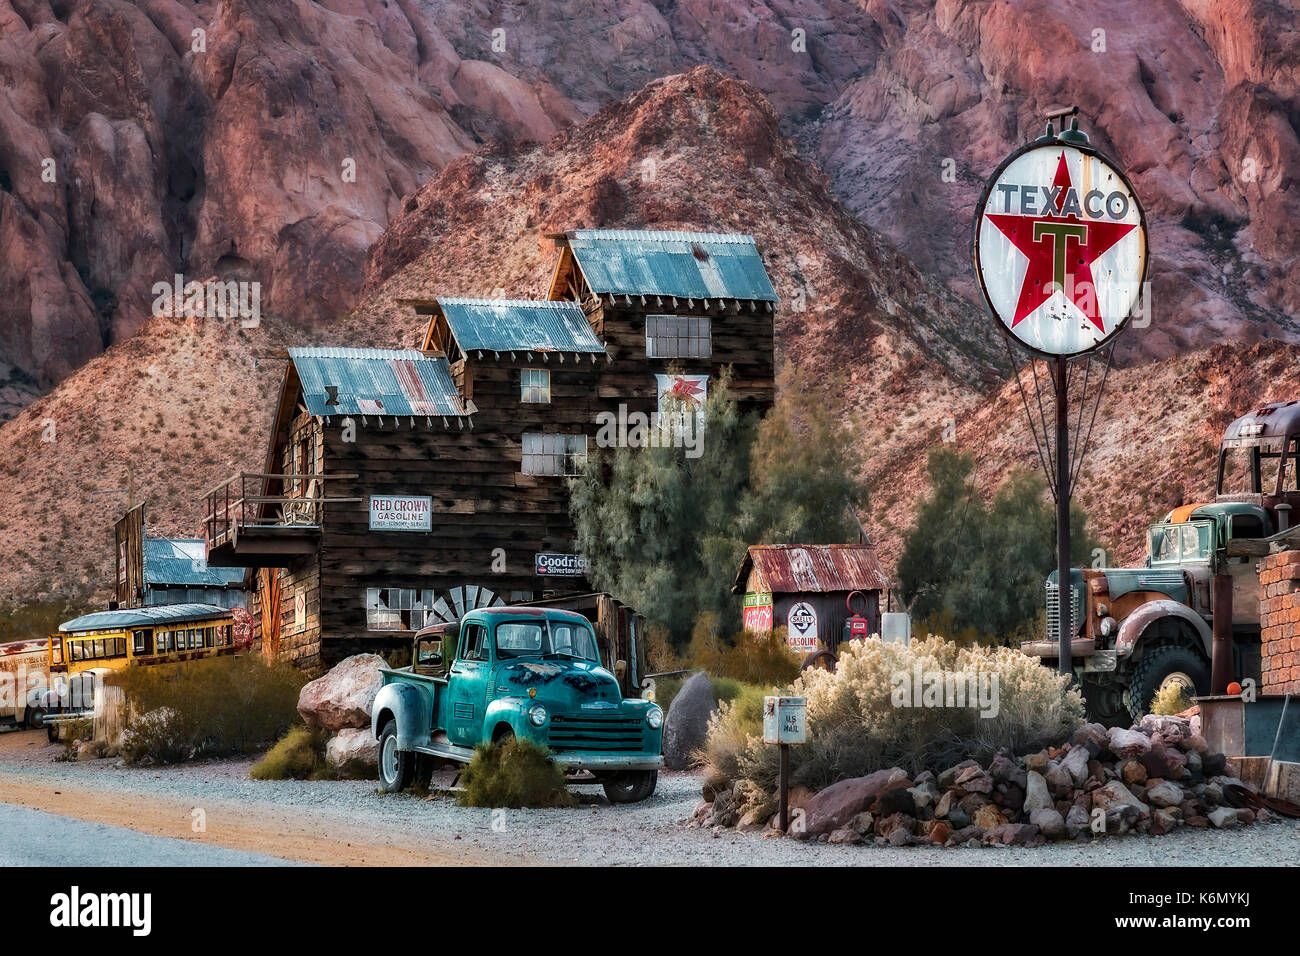 Vintage Texaco Gas Station - Ghost town vintage Texaco Gasoline Station along with a wooden inn and old rusted cars, trucks and buses.  Available in c - Stock Image